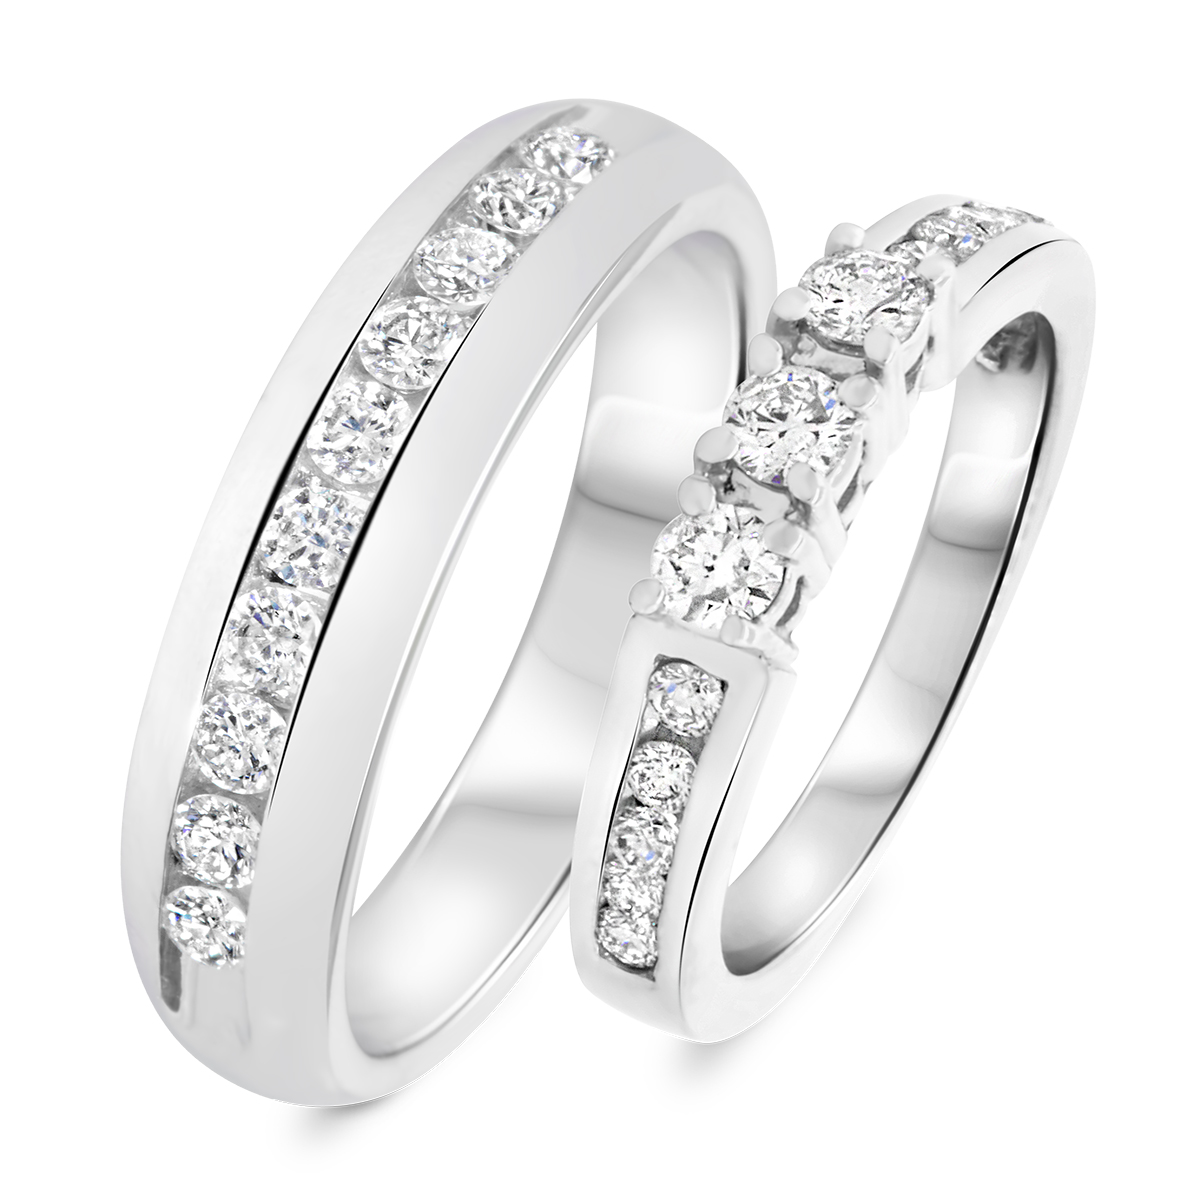 7/8 Carat T.W. Round Cut Diamond His and Hers Wedding Band Set 14K White Gold-